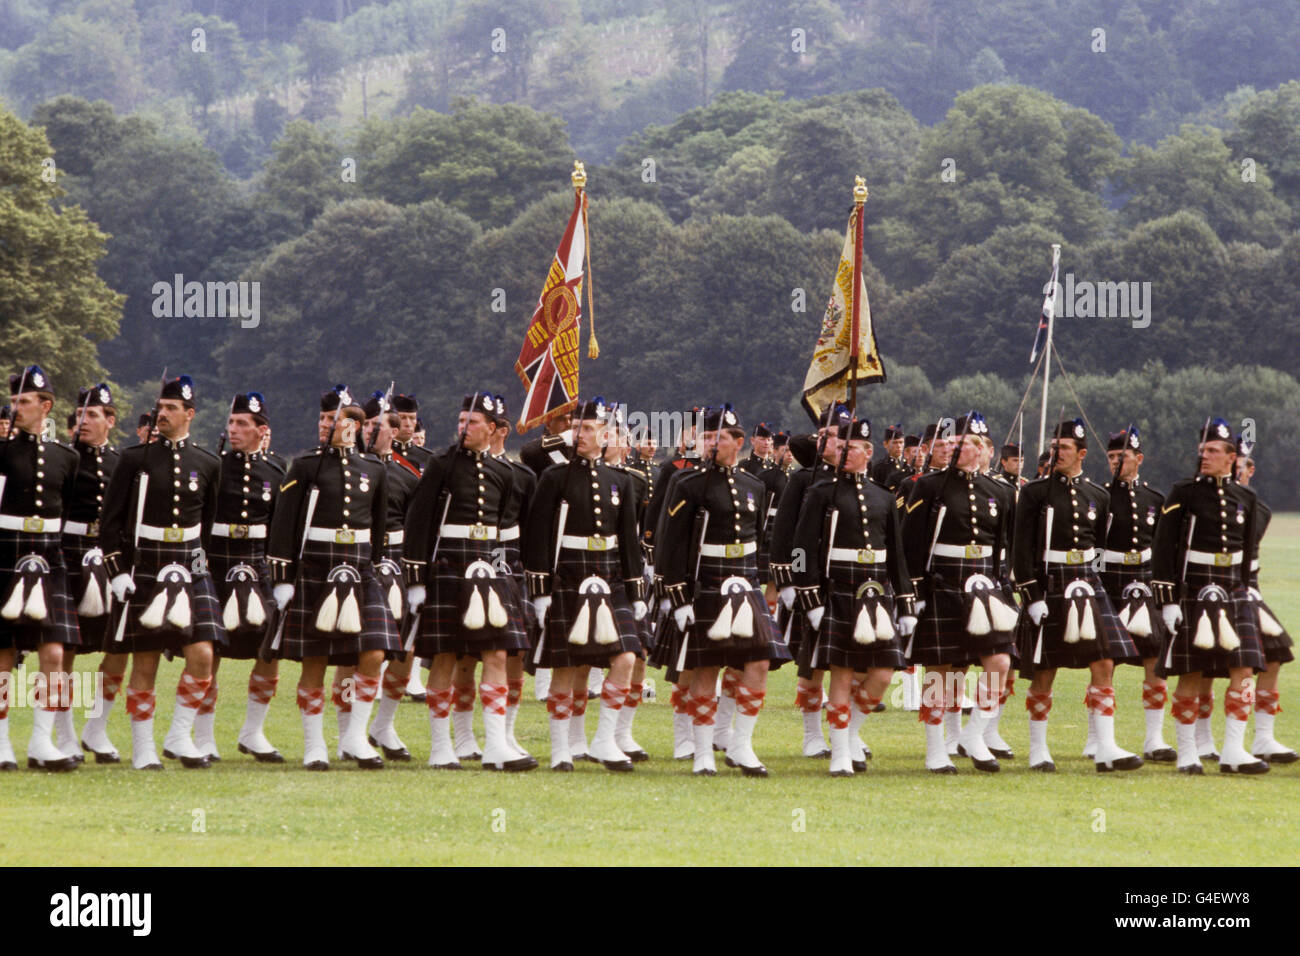 Military - 1st Battalion of the Queen's Own Highlanders - Tidworth - Stock Image